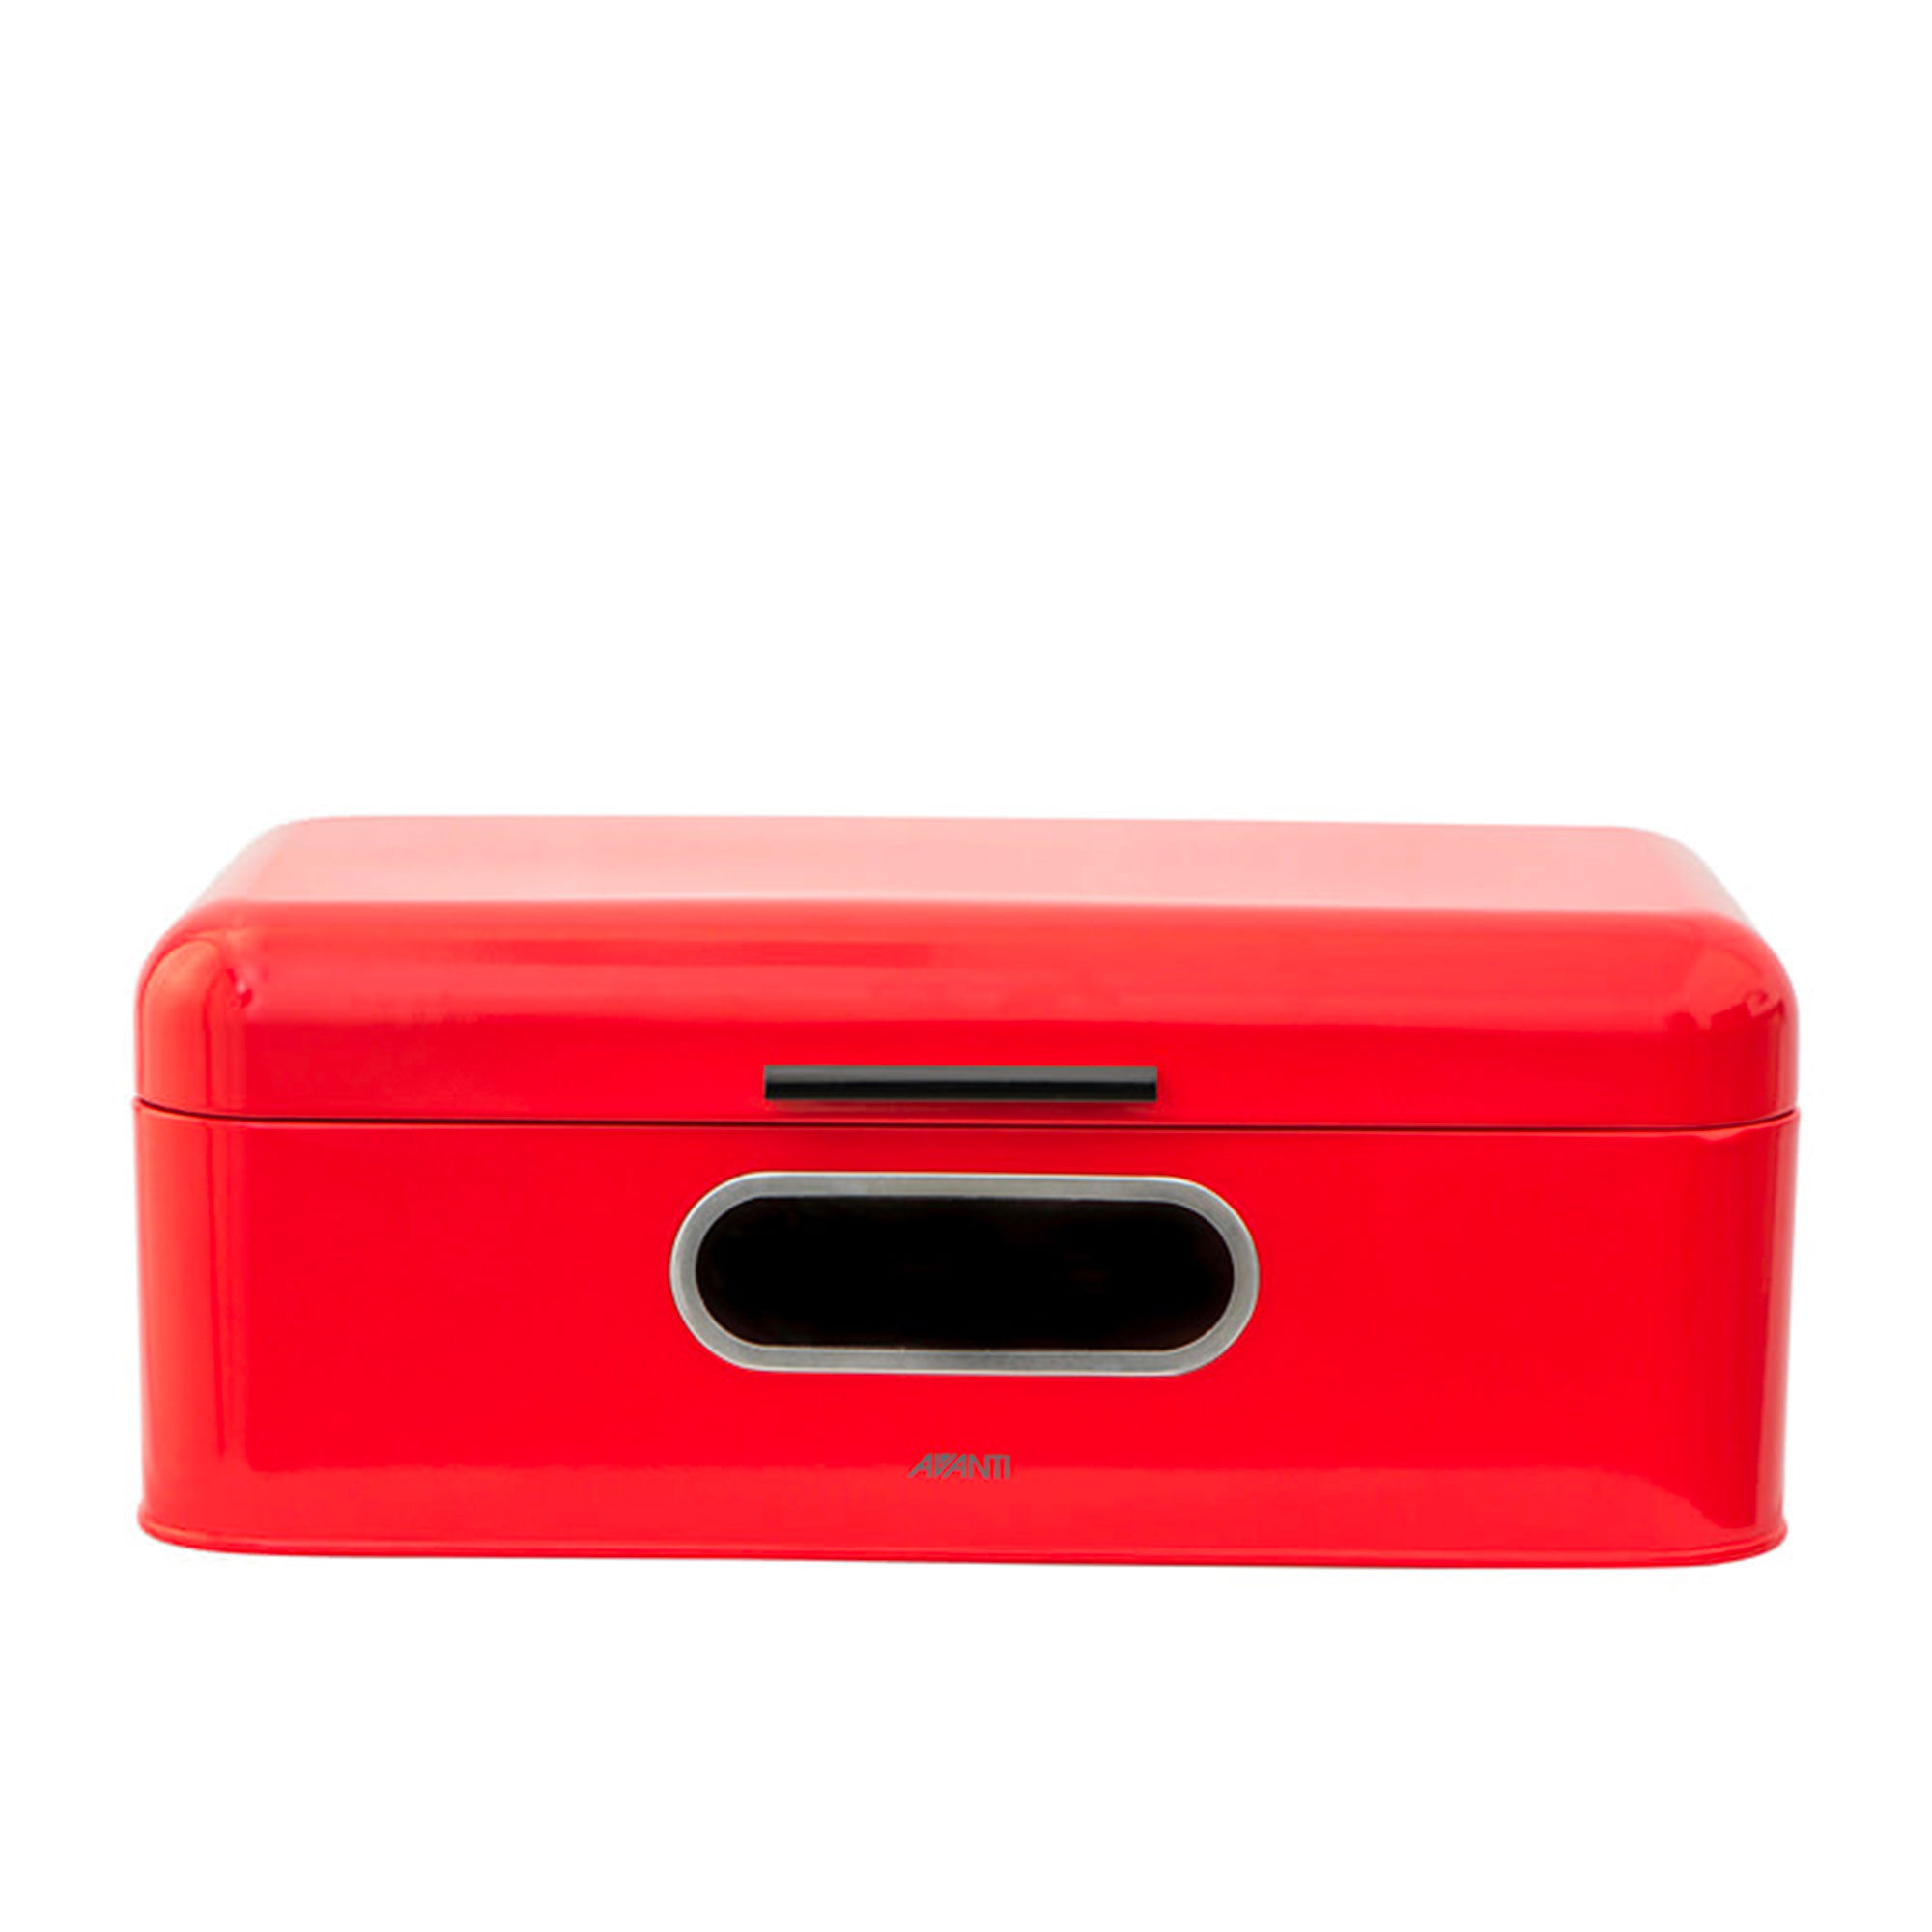 Avanti Retro Bread Bin with Window 42x22.5x16cm Red